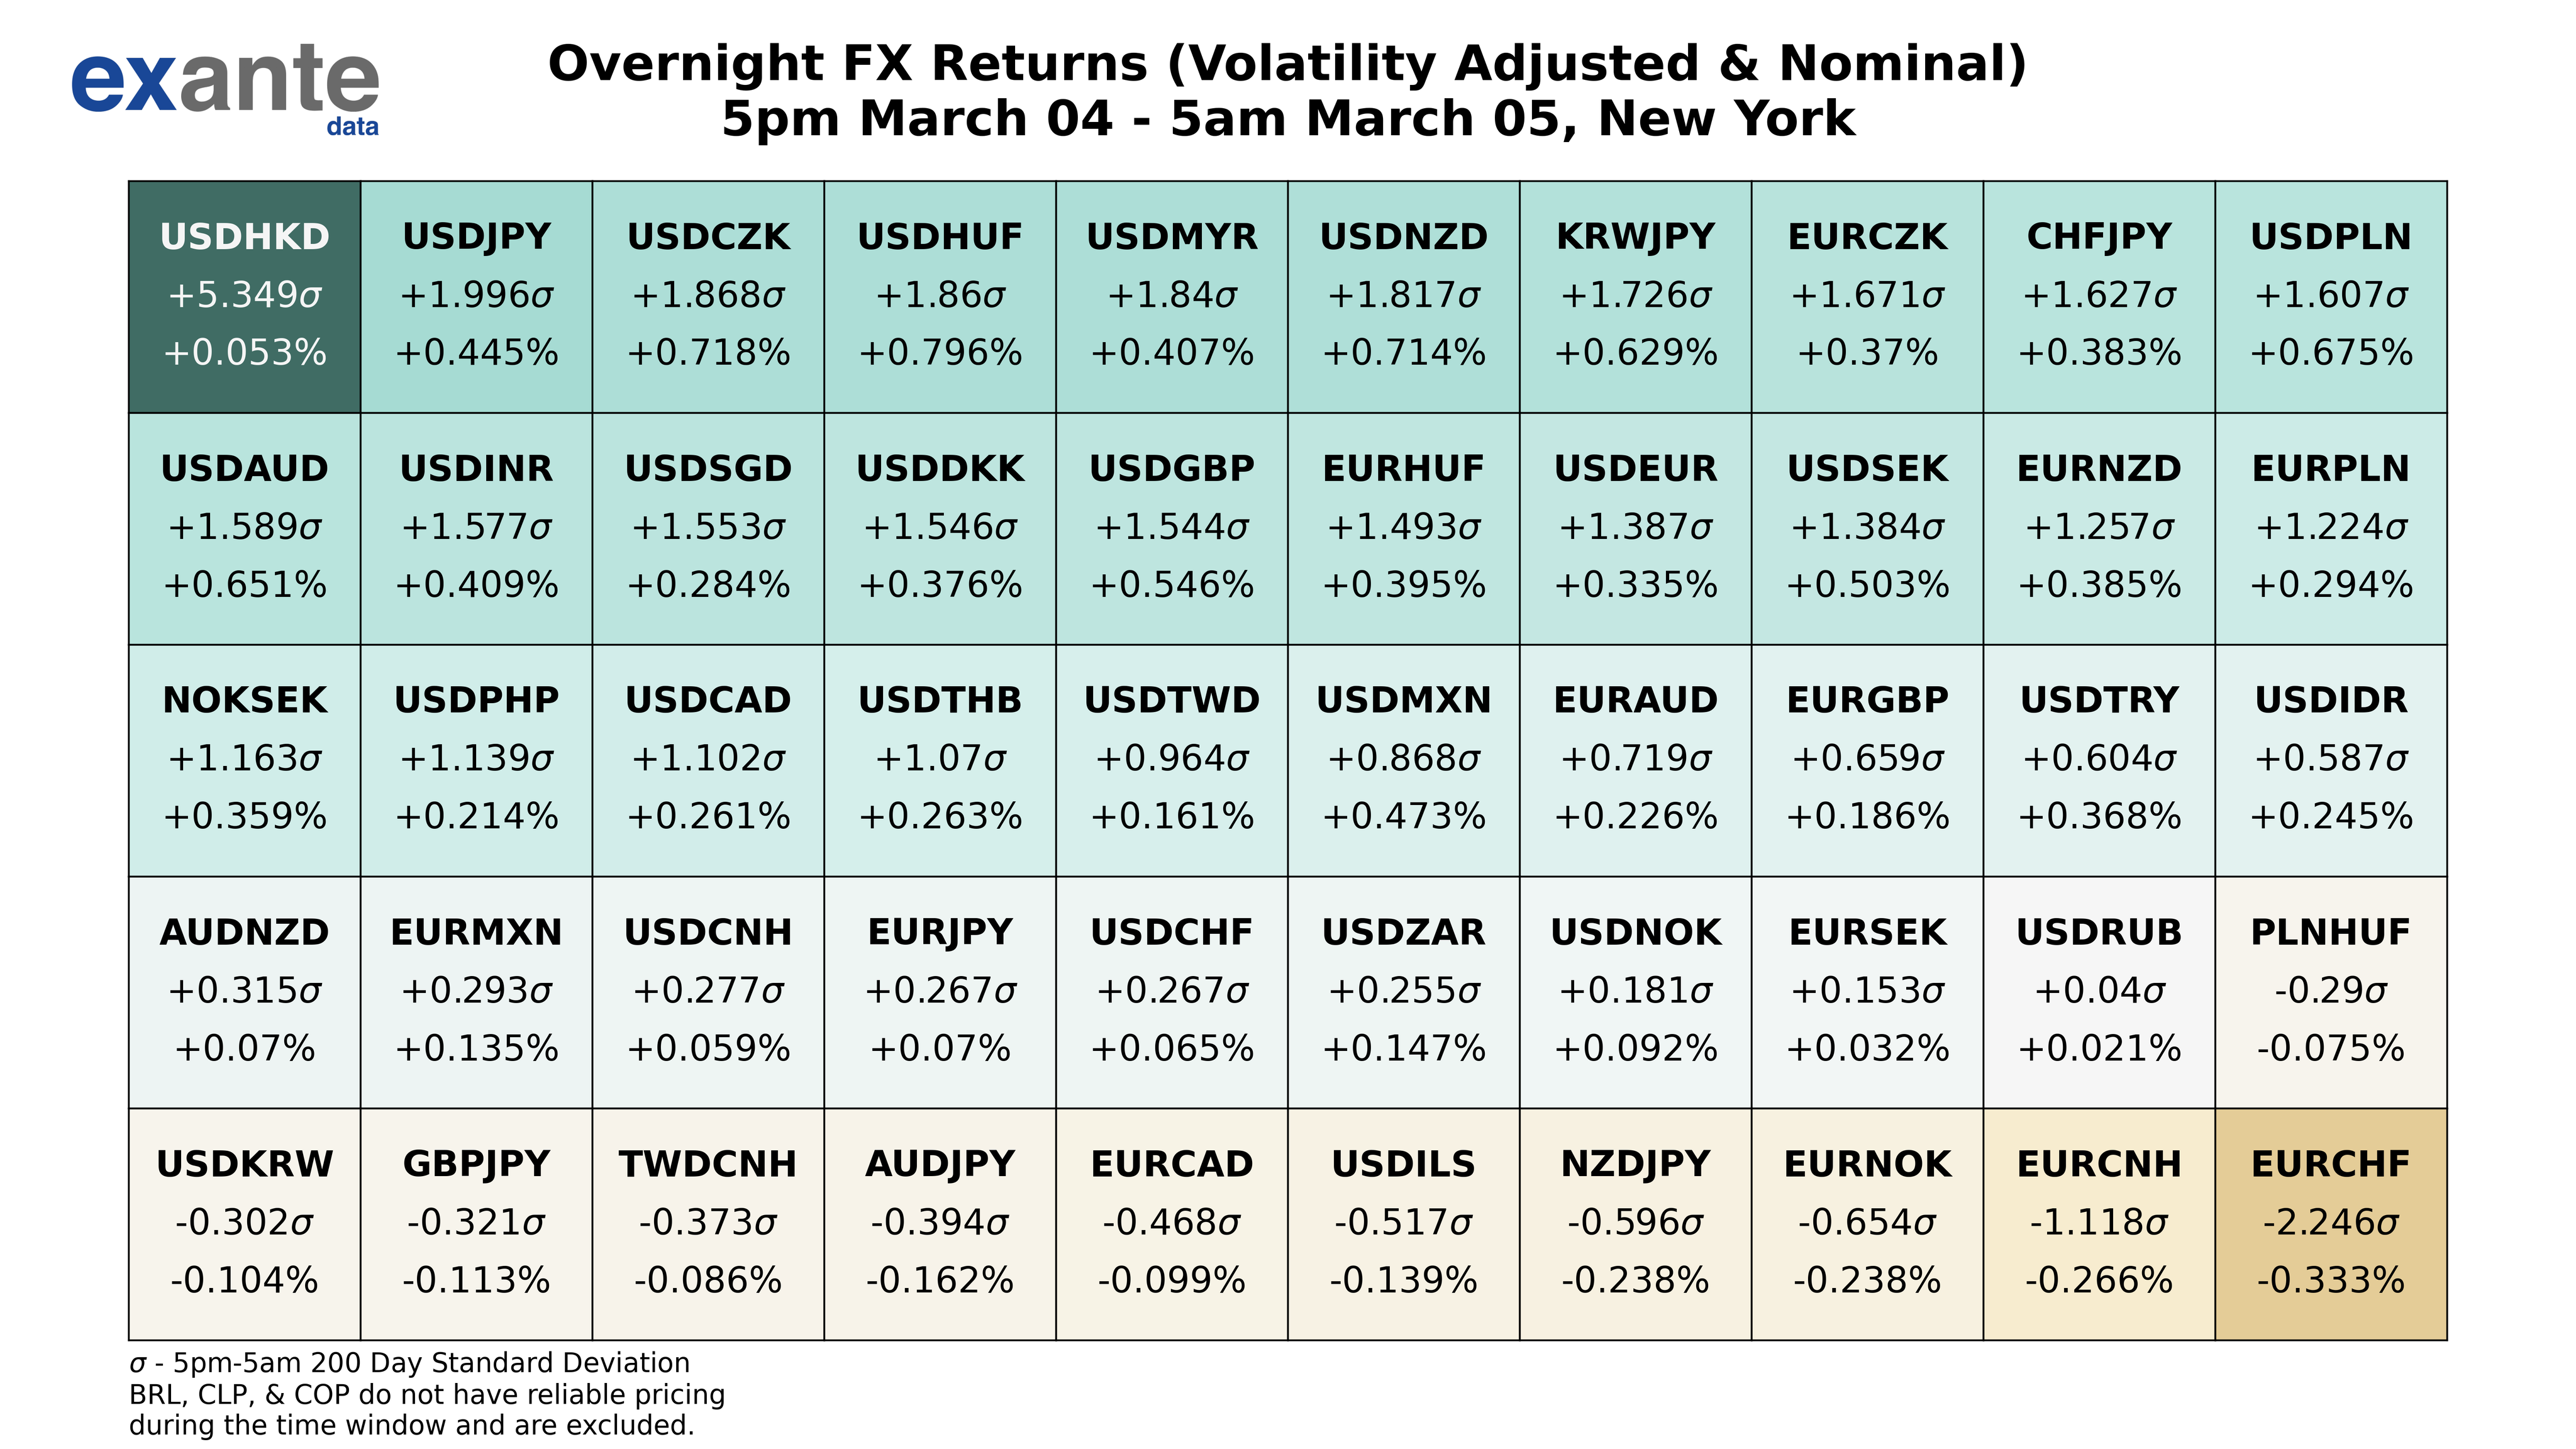 Overnight FX returns - which are the biggest movers?